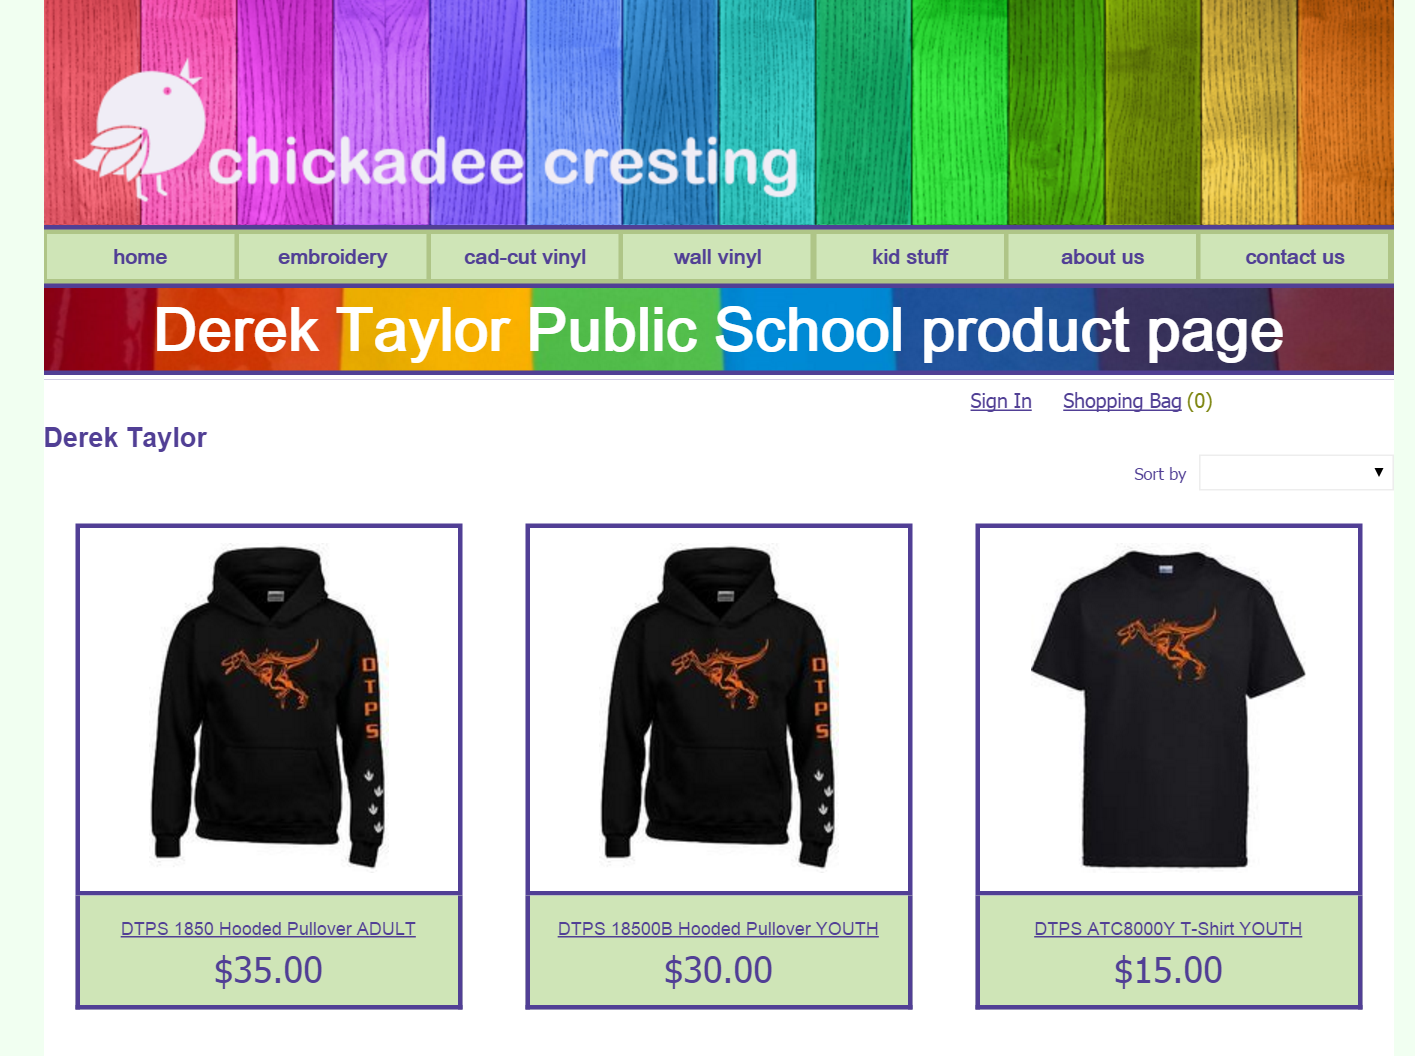 Check out our DTPS school clothing, now available to order!